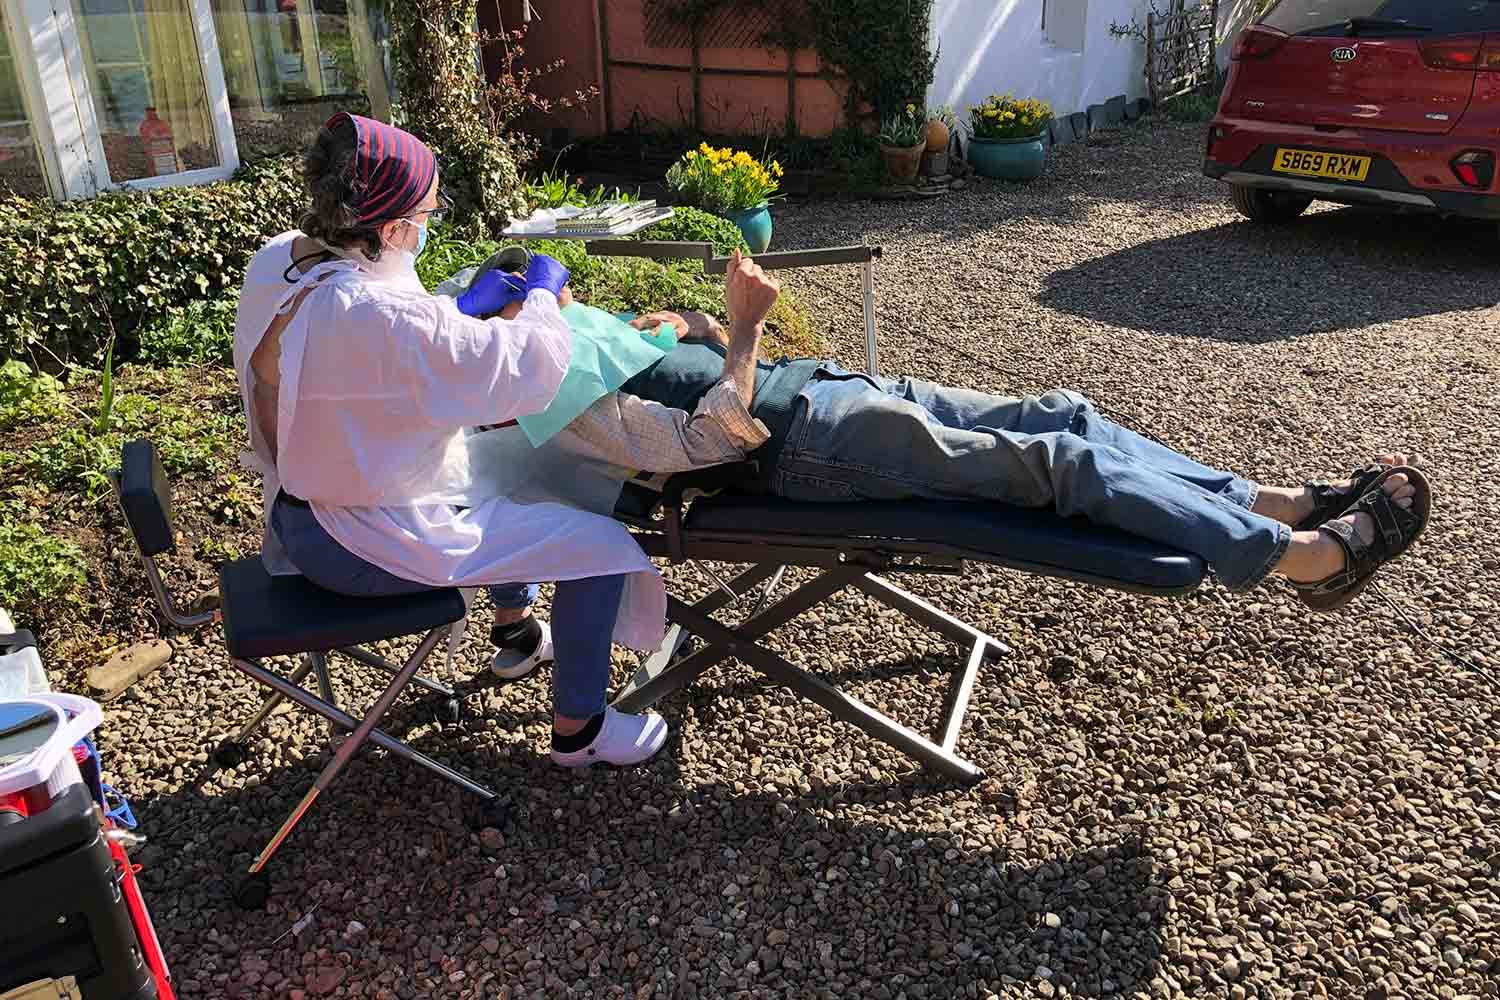 Flying Smiles – the dental hygienist offering treatment in gardens